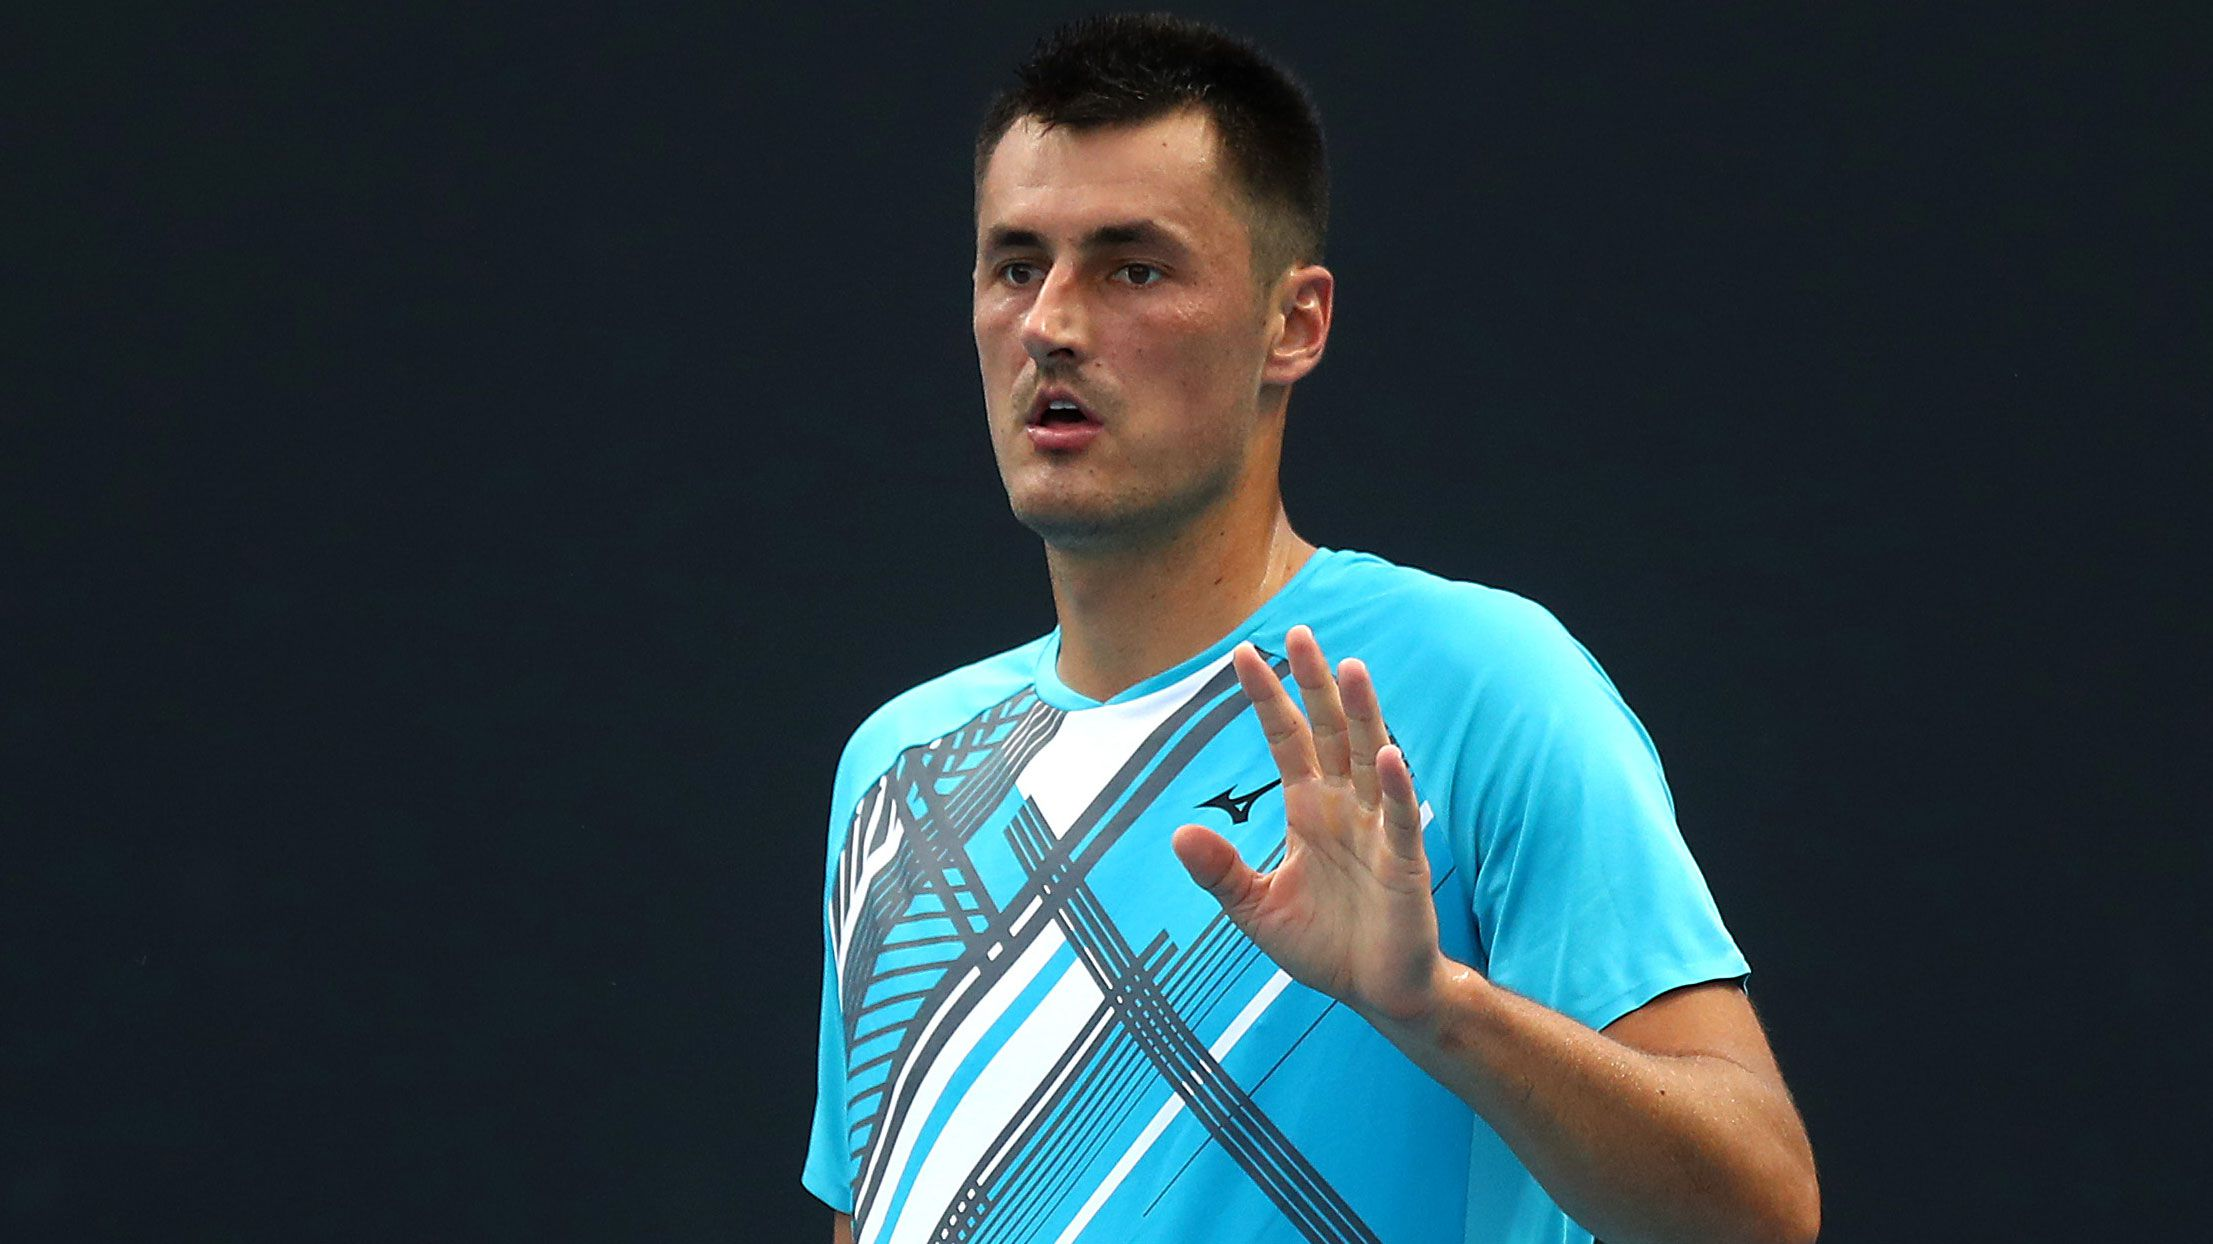 Bernard Tomic in action in the first round of the Australian Open.